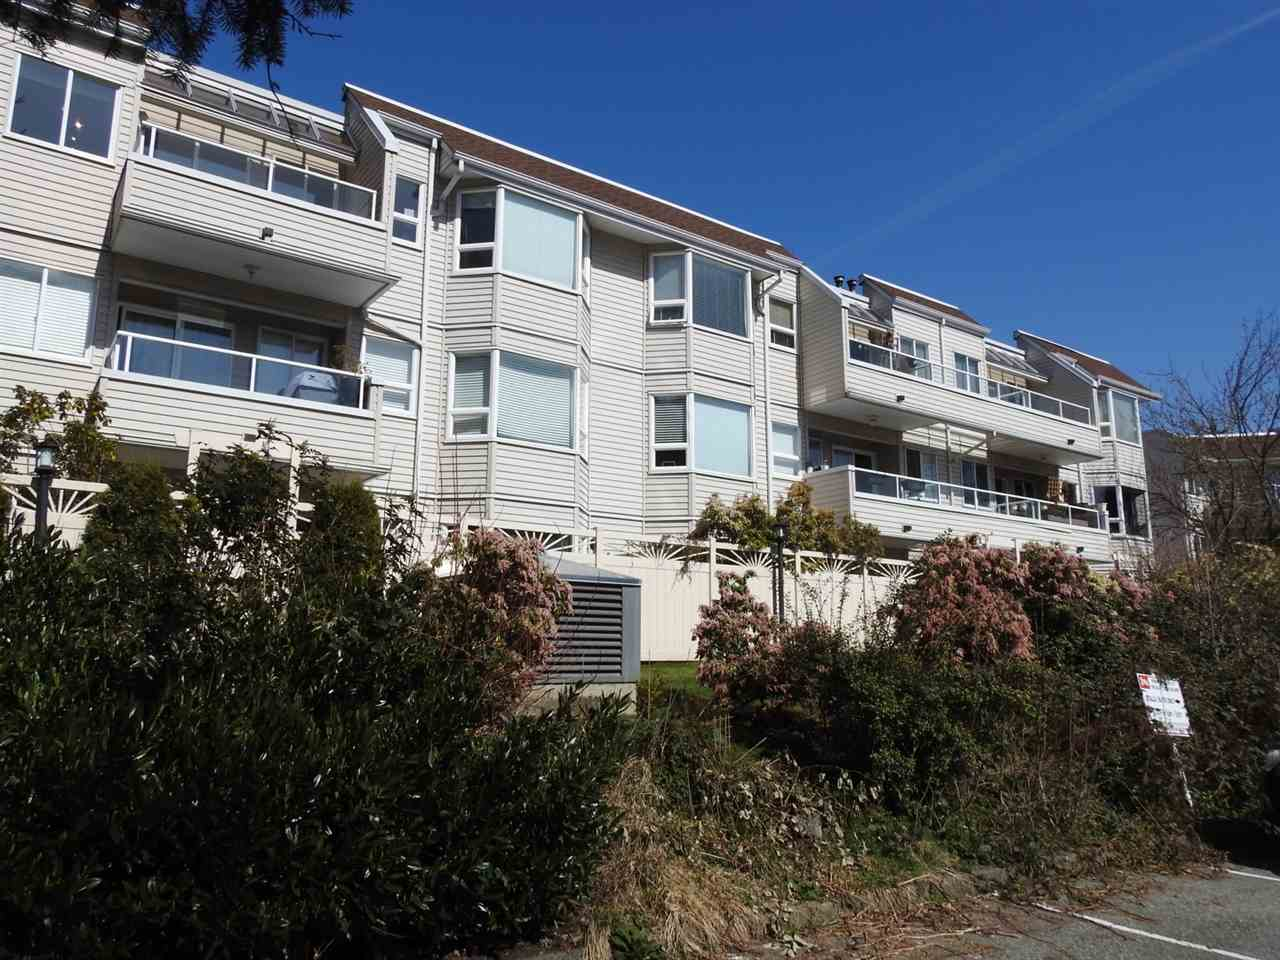 110 1155 ROSS ROAD - Lynn Valley Apartment/Condo for sale, 2 Bedrooms (R2560572) - #12